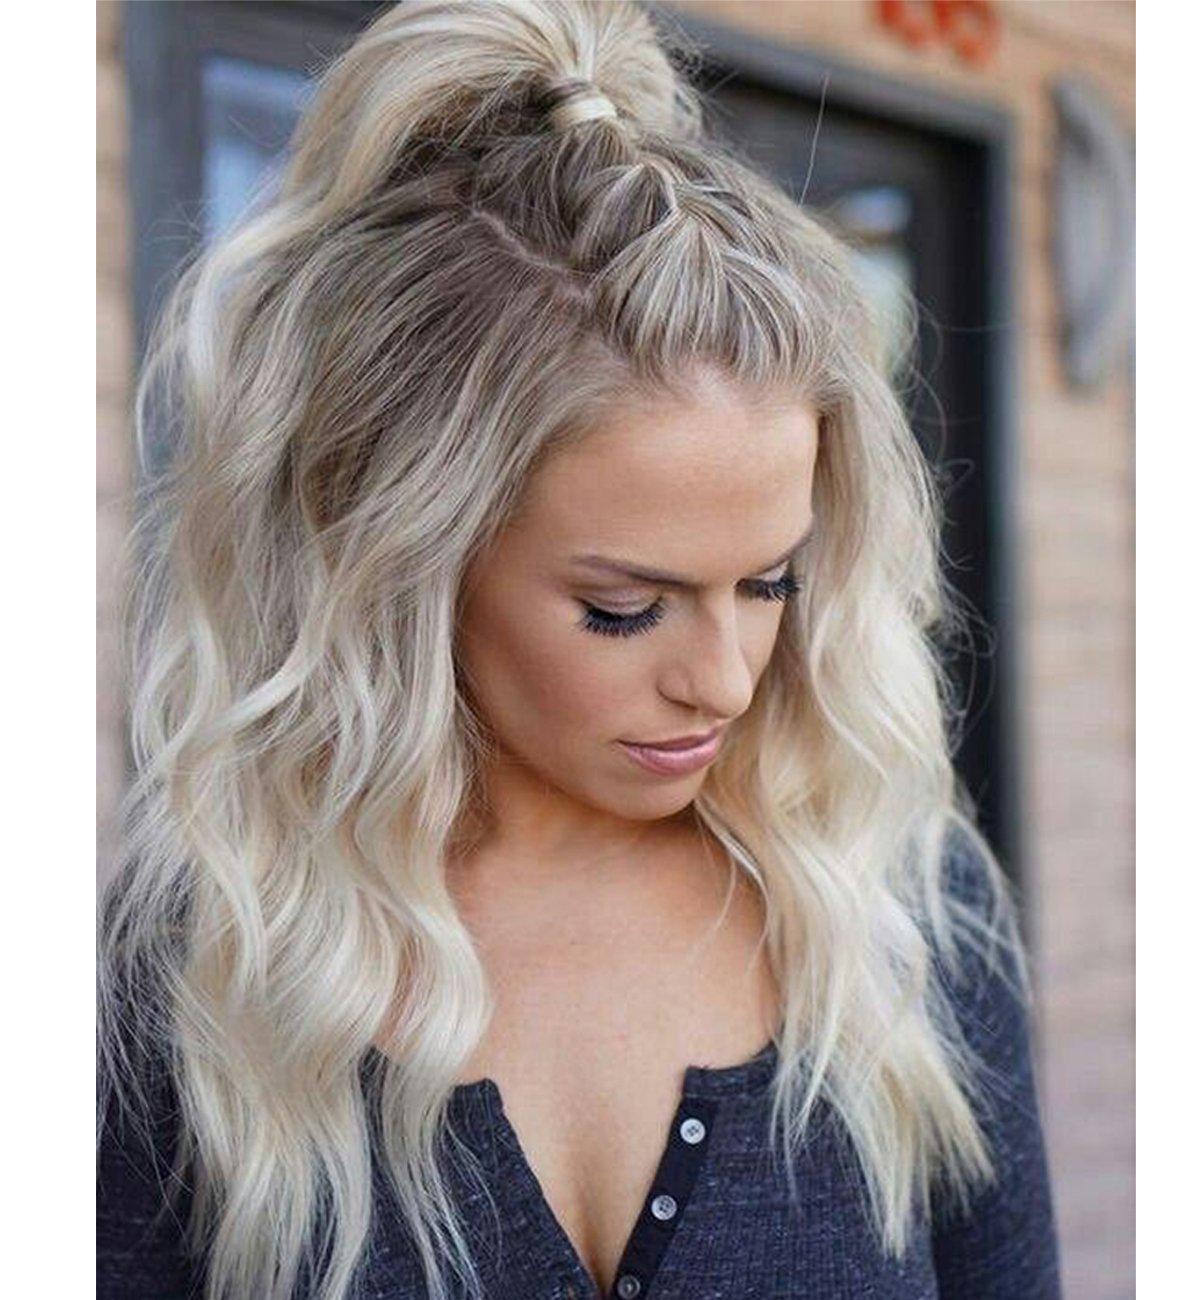 Vedar 2018 Summer Style Flawless- Wob Hair (Wavy Bob Hair) Dirty Blonde Hair Dark Rooted Blonde Lace Front Wigs for Women (Loose Curl 18 inches)